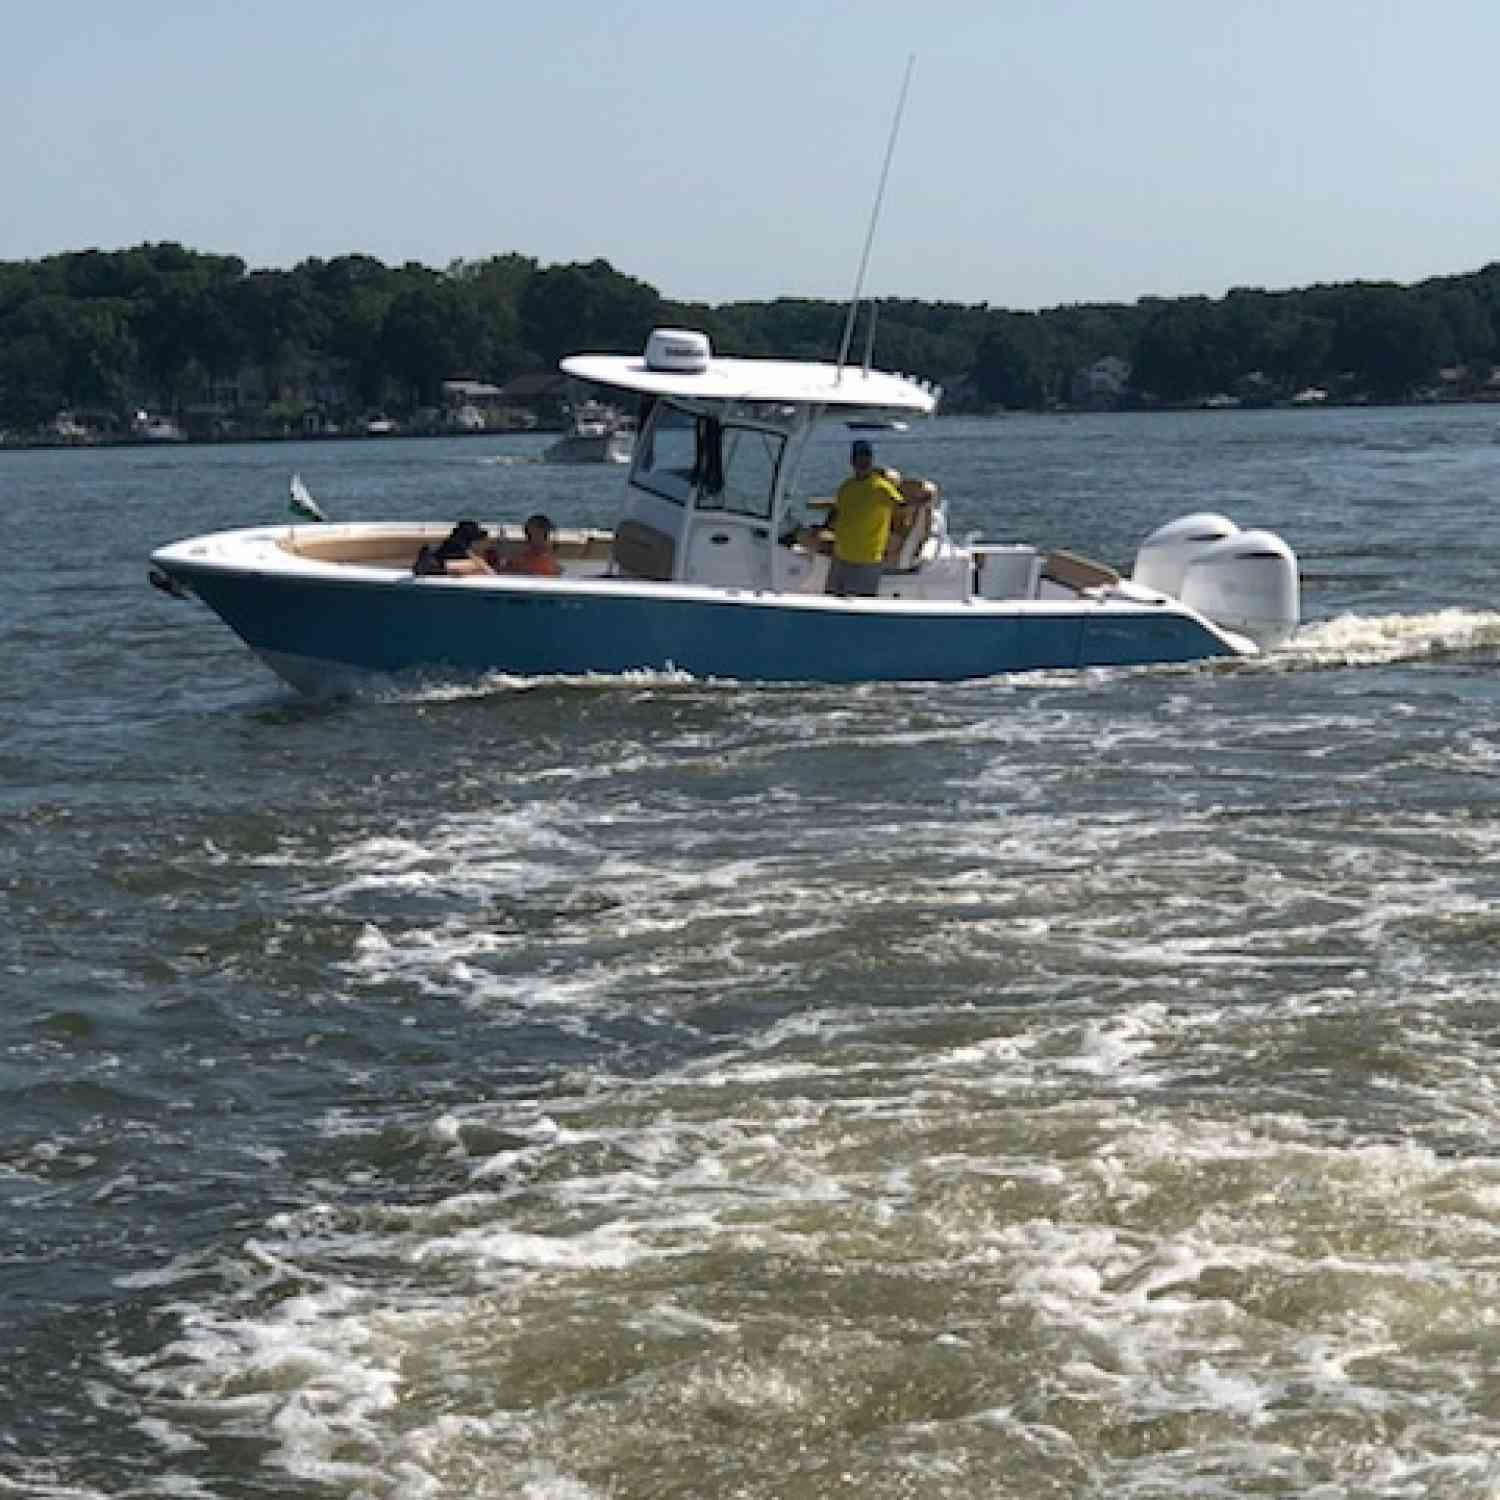 Title: Chesapeake Bay - On board their Sportsman Open 282 Center Console - Location: Pasadena maryland. Participating in the Photo Contest #SportsmanJune2018